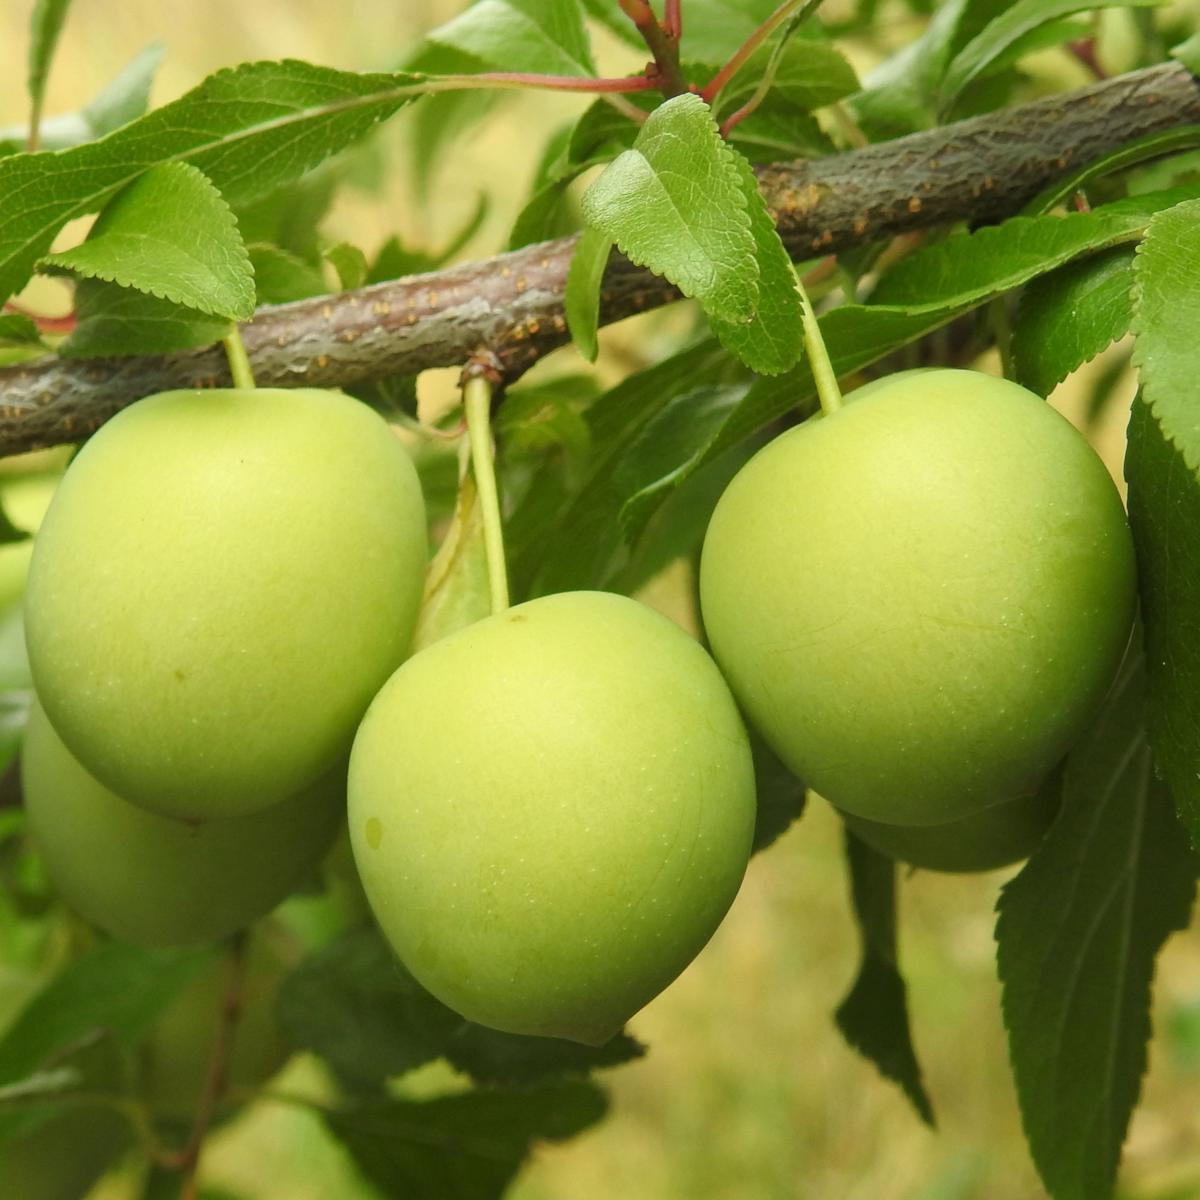 Plum Tree Pruning Diseases And Care For Plum Trees